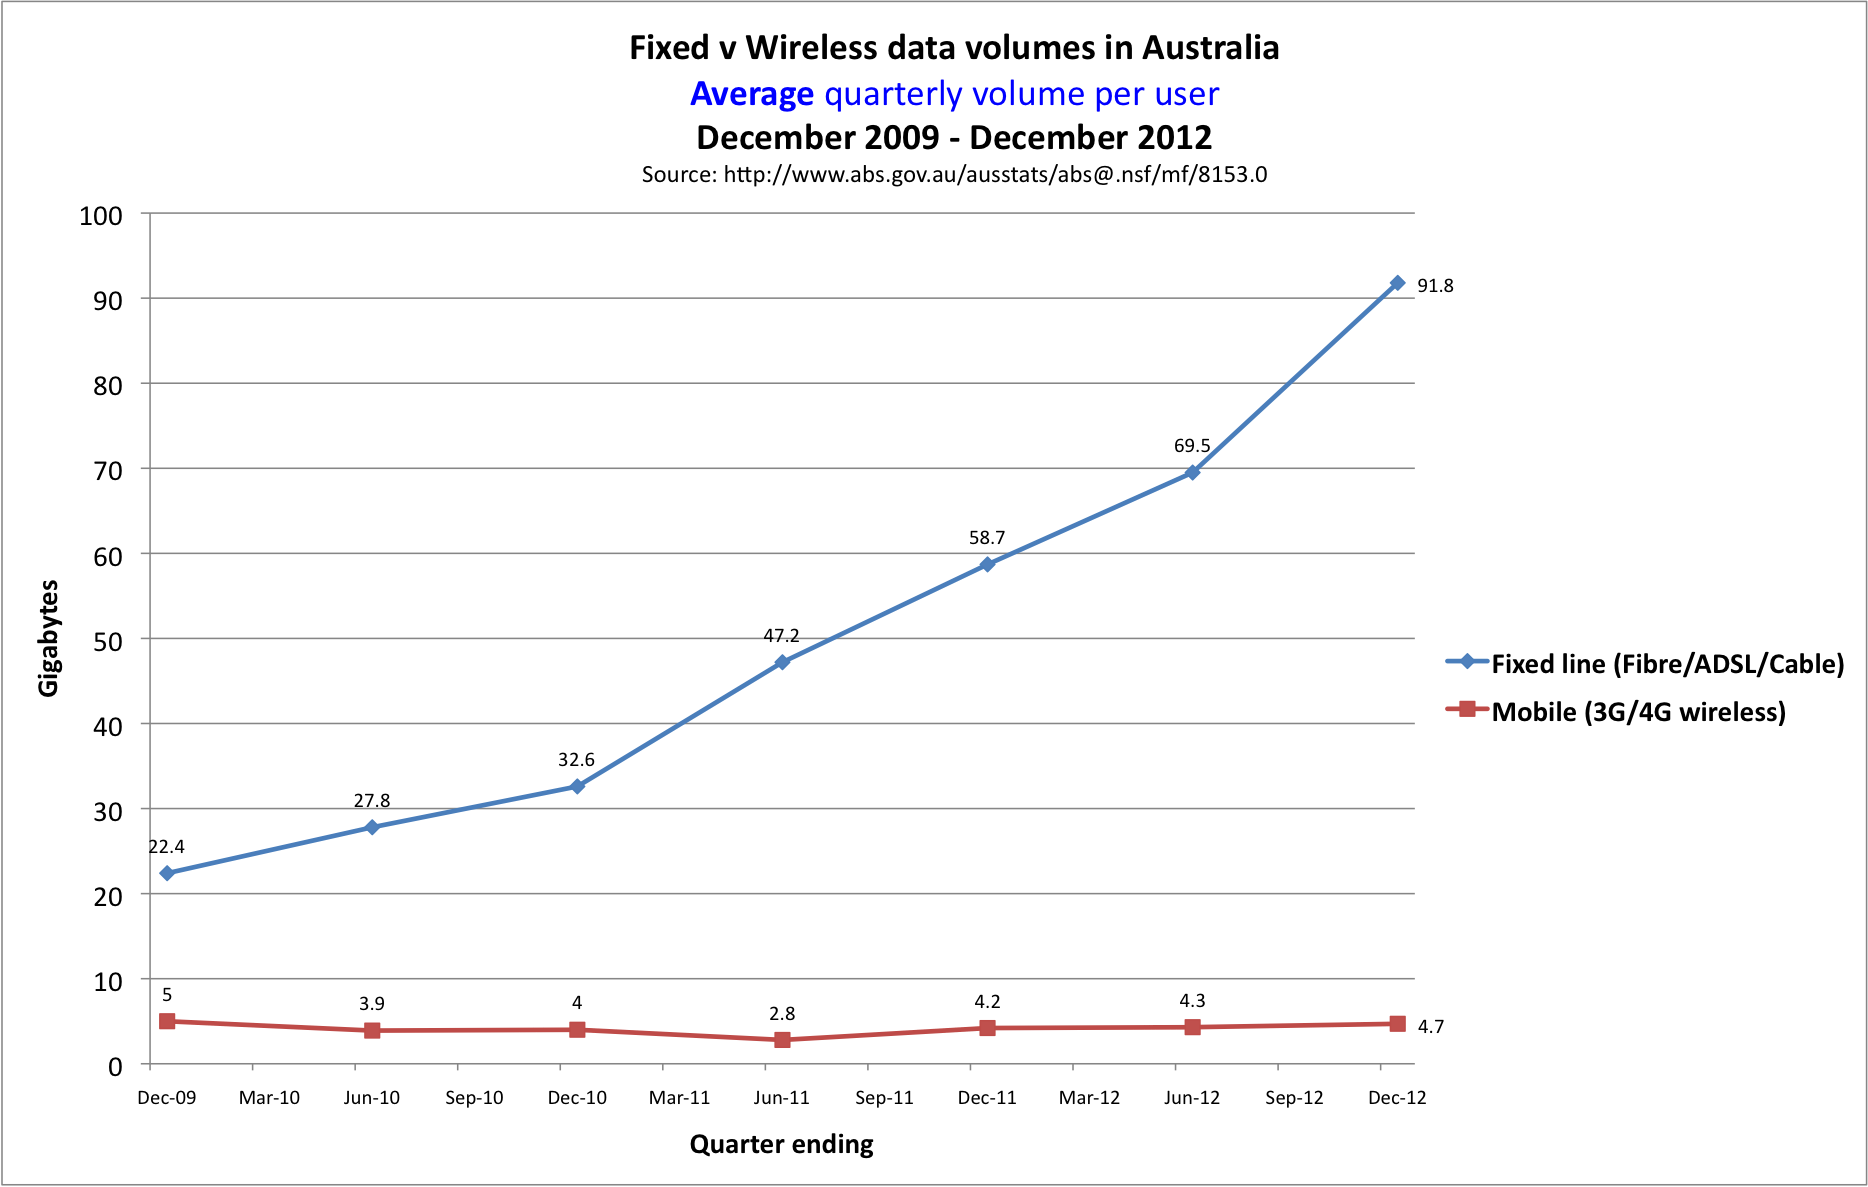 The Top 10 Nbn Myths Debunked Home Wiring Diagram Fixed V Mobile Download Volume In Australia December 2009 To 2012